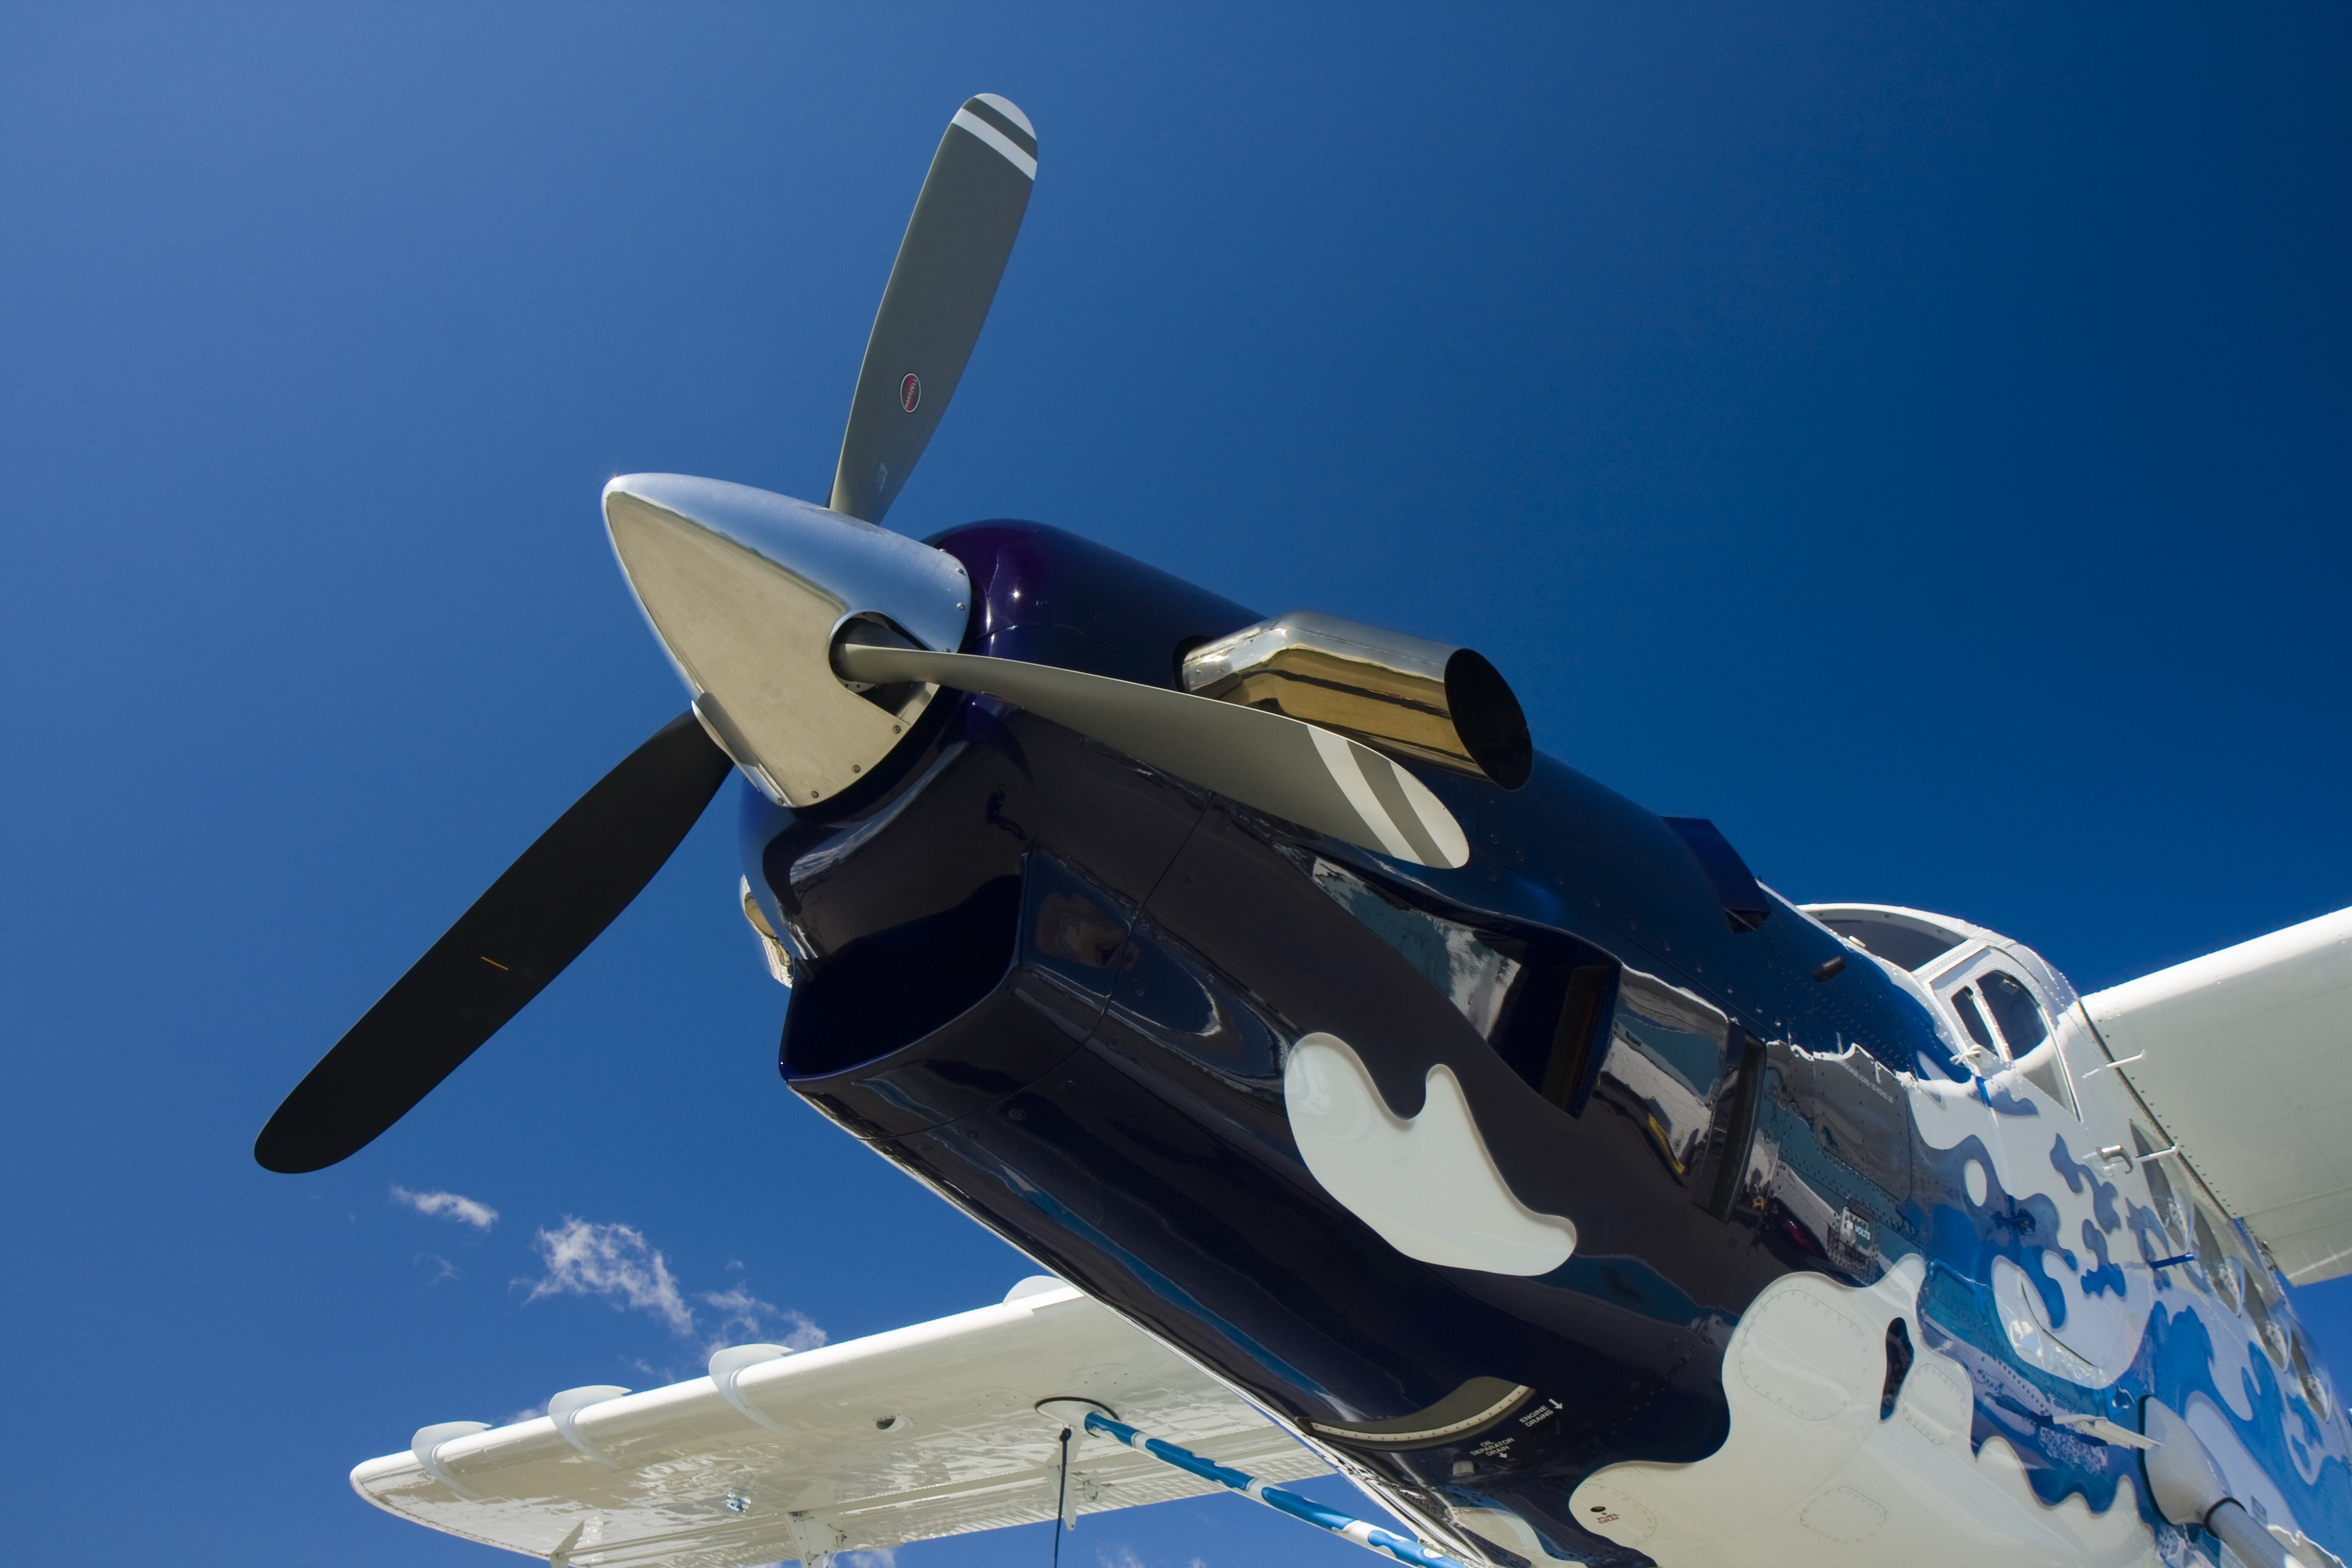 What are the advantages of twin engine versus single engine